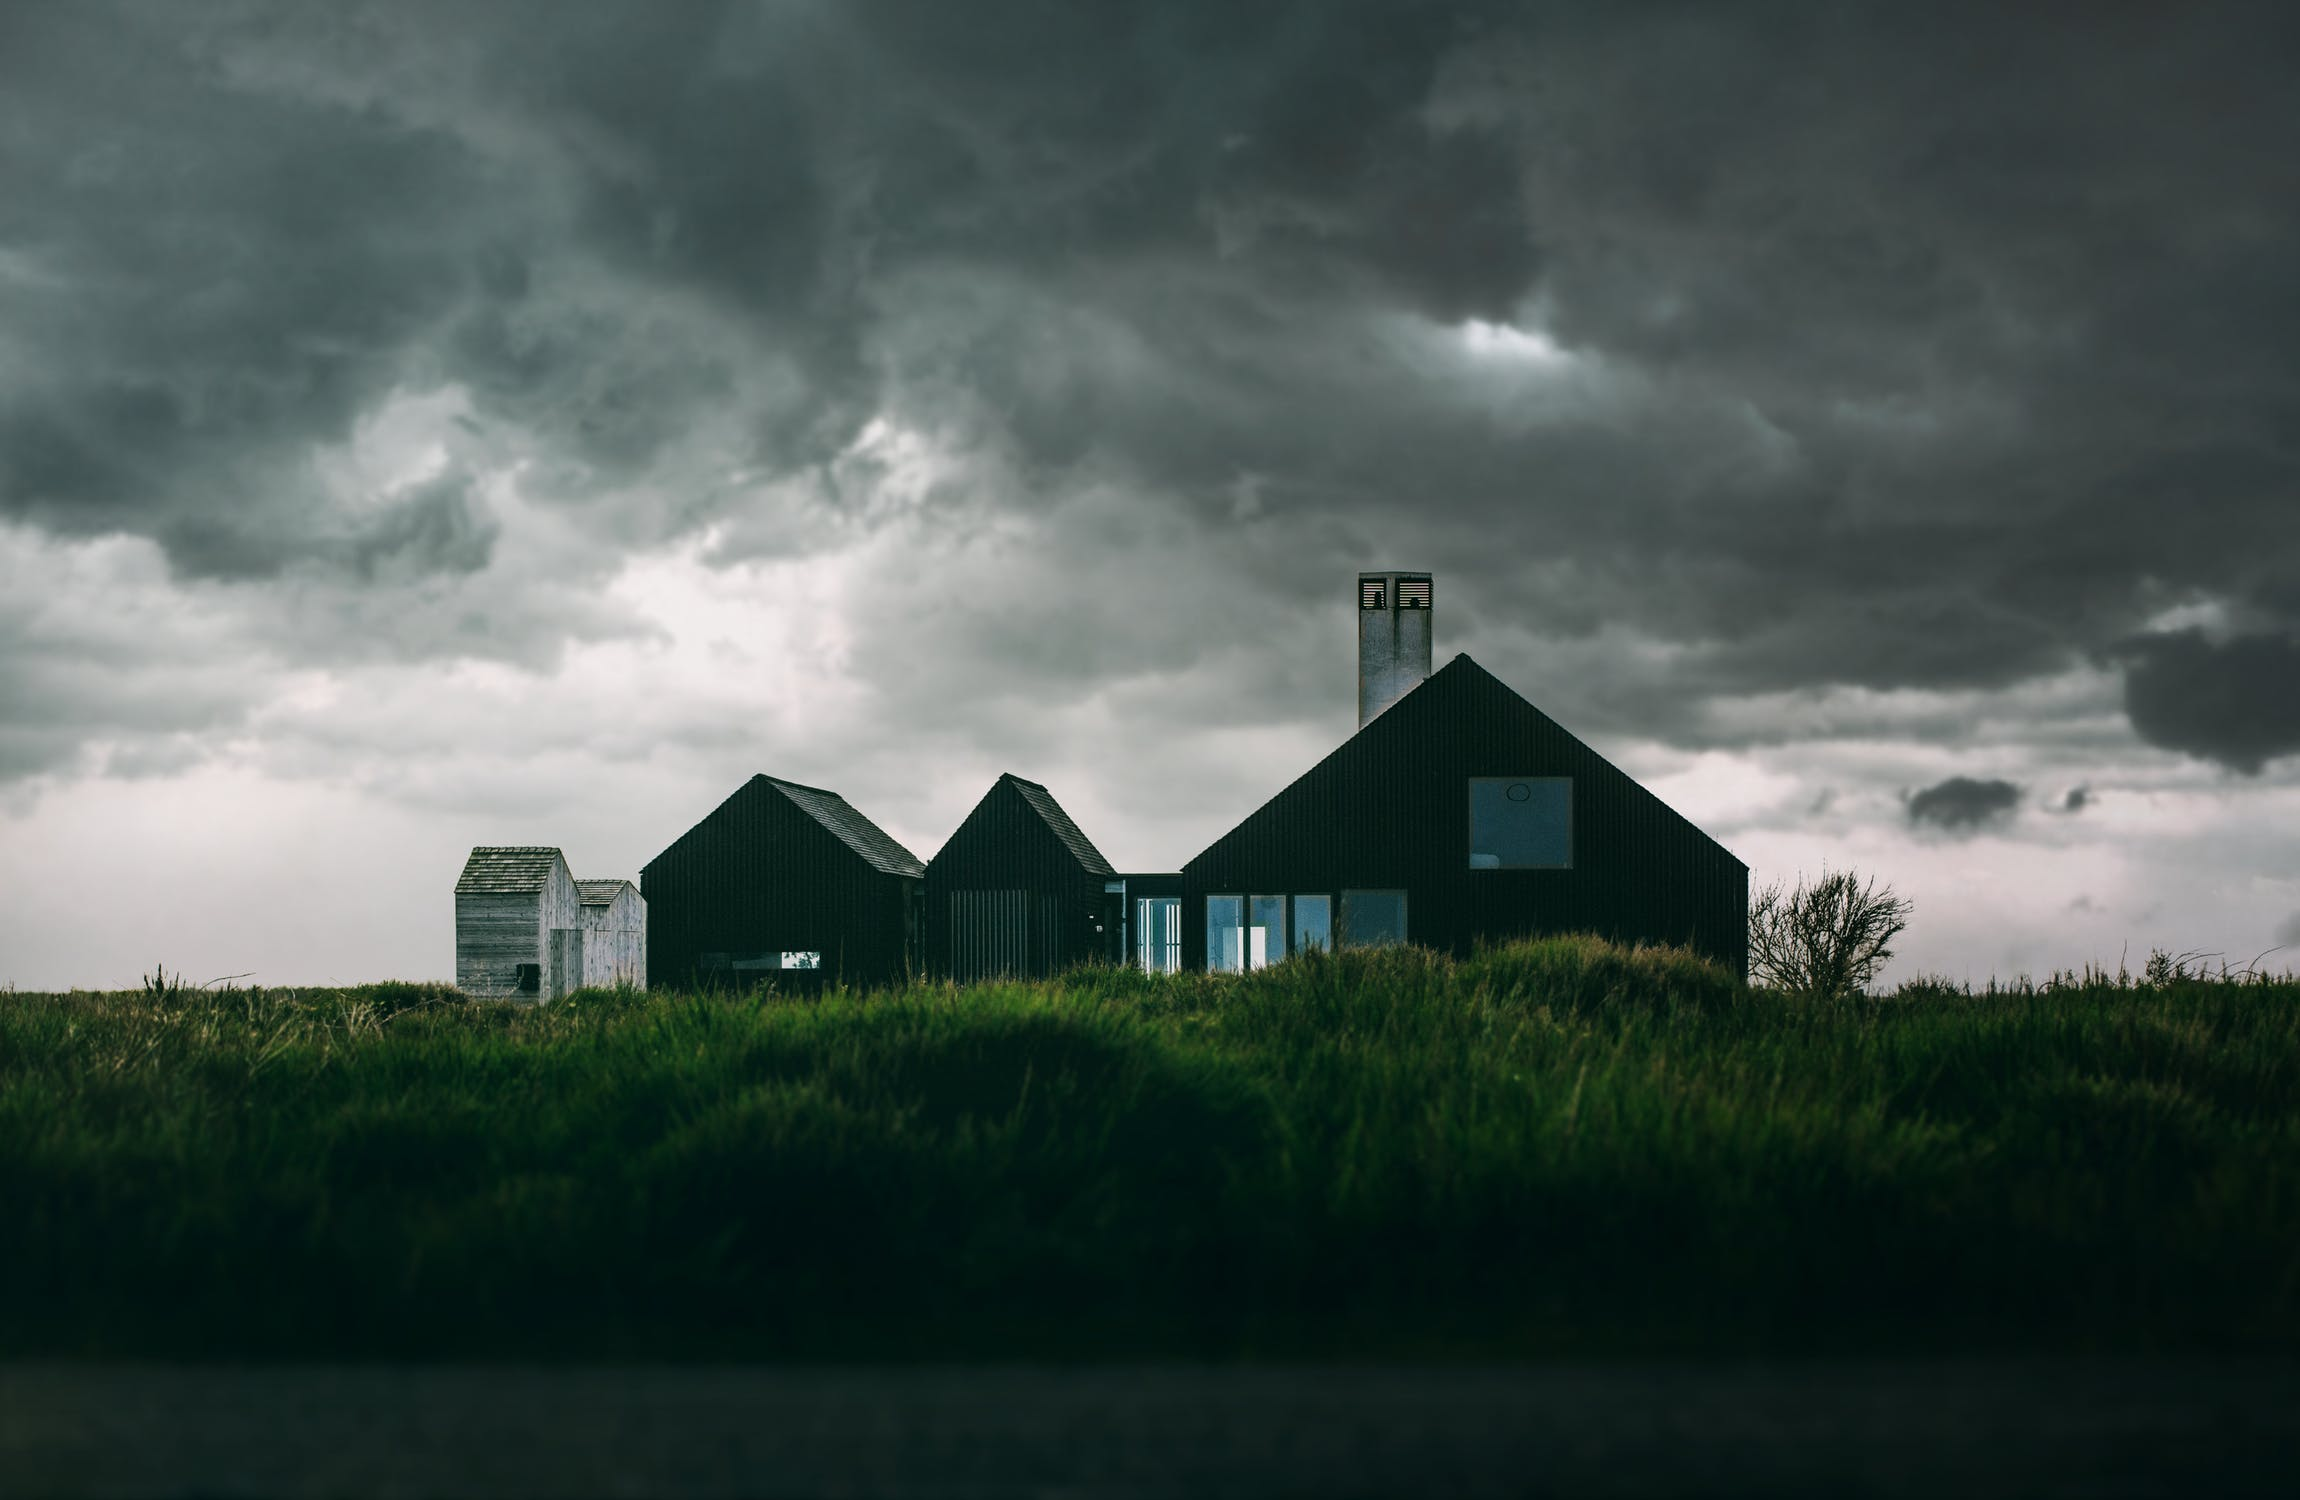 storm, homeowner, insurance policy fha usda va loan home loan mortgage lender first time home buyer clouds storm rain hail lightning natural disaster discounts